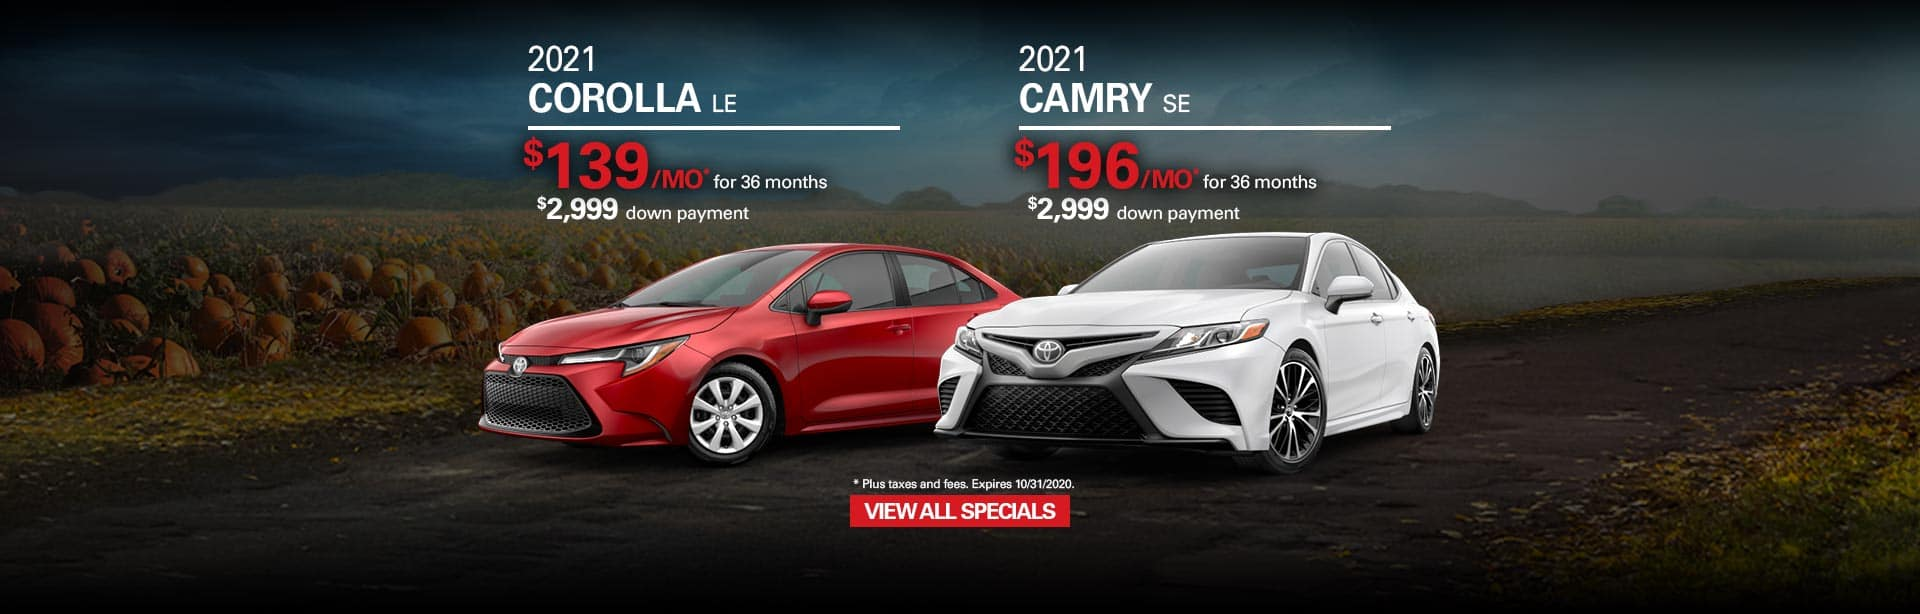 Oct20-HT-Corolla-LE-Camry-SE-Banner